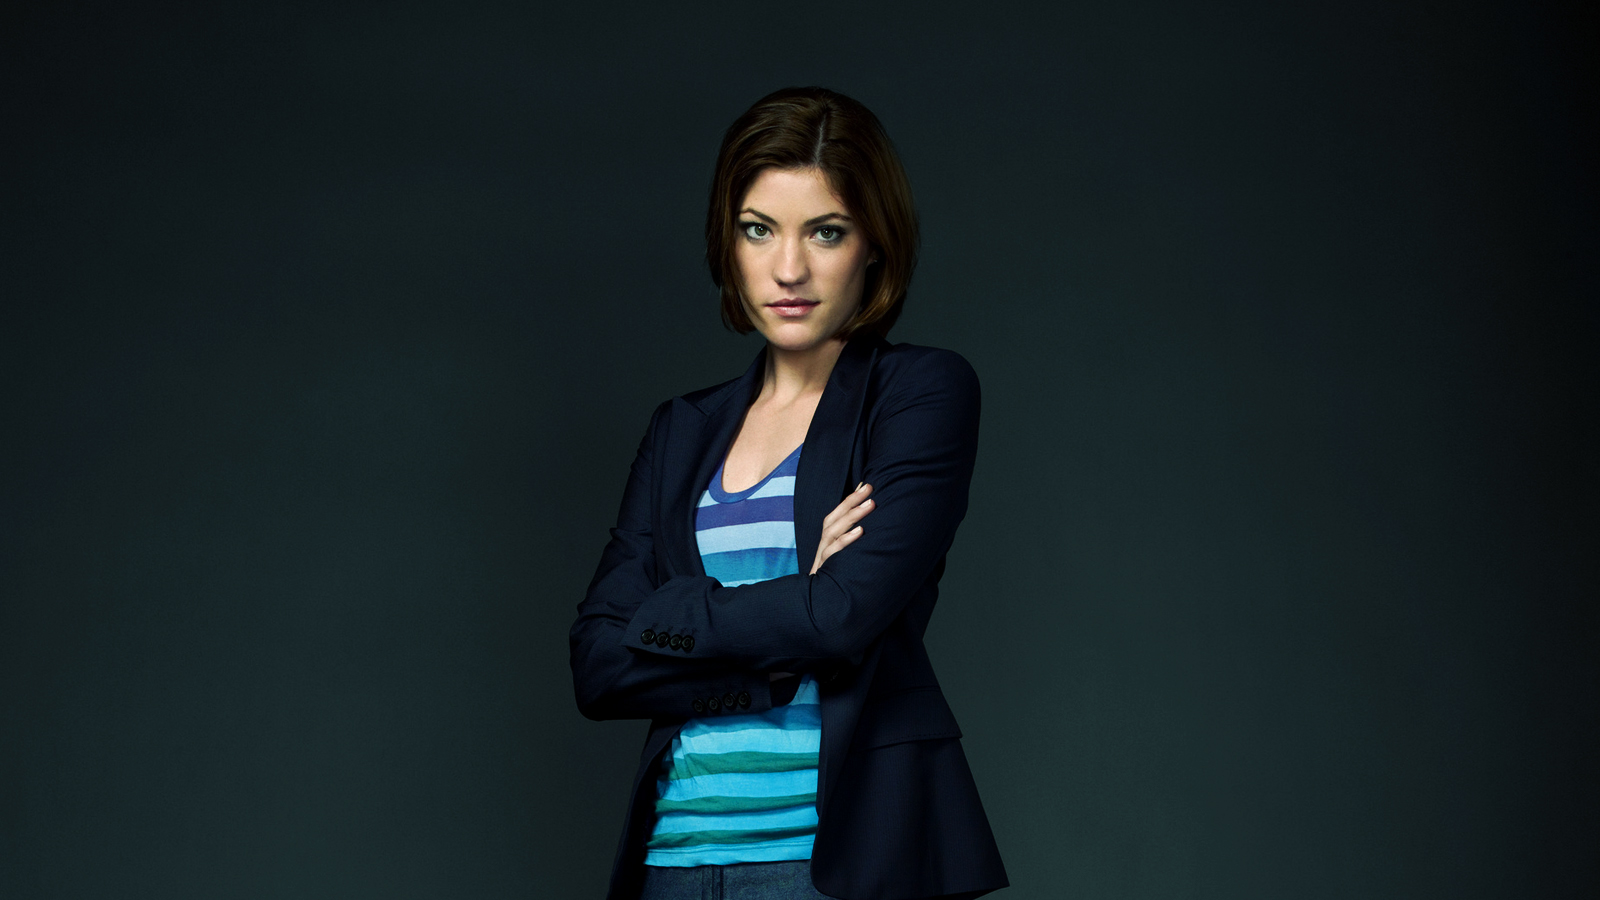 http://2.bp.blogspot.com/-crJ1xsjl5SM/ULXe1jVBAHI/AAAAAAAAGXI/gVUuKxLOByo/s1600/Jennifer-Carpenter-as-Debra-from-Dexter-HD-Wallpaper_Vvallpaper.Net.jpg